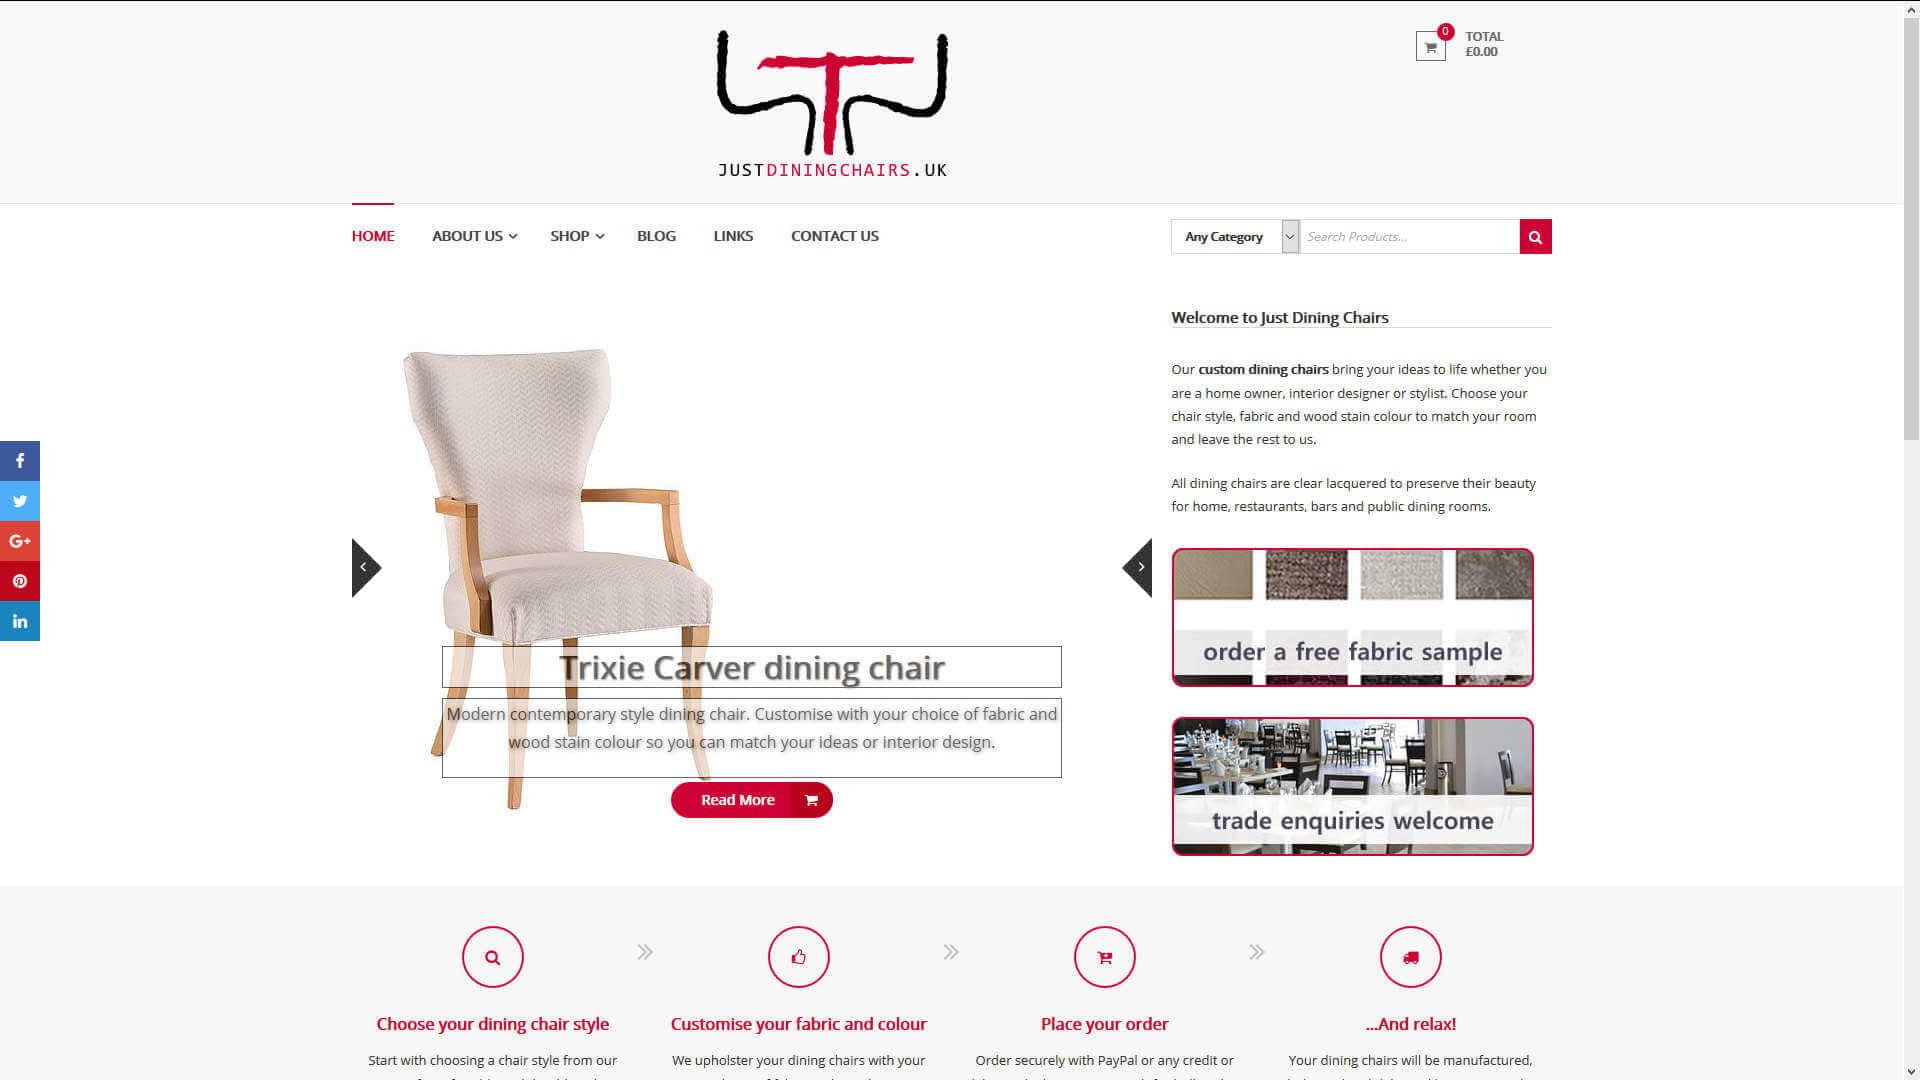 Just Dining Chairs home page